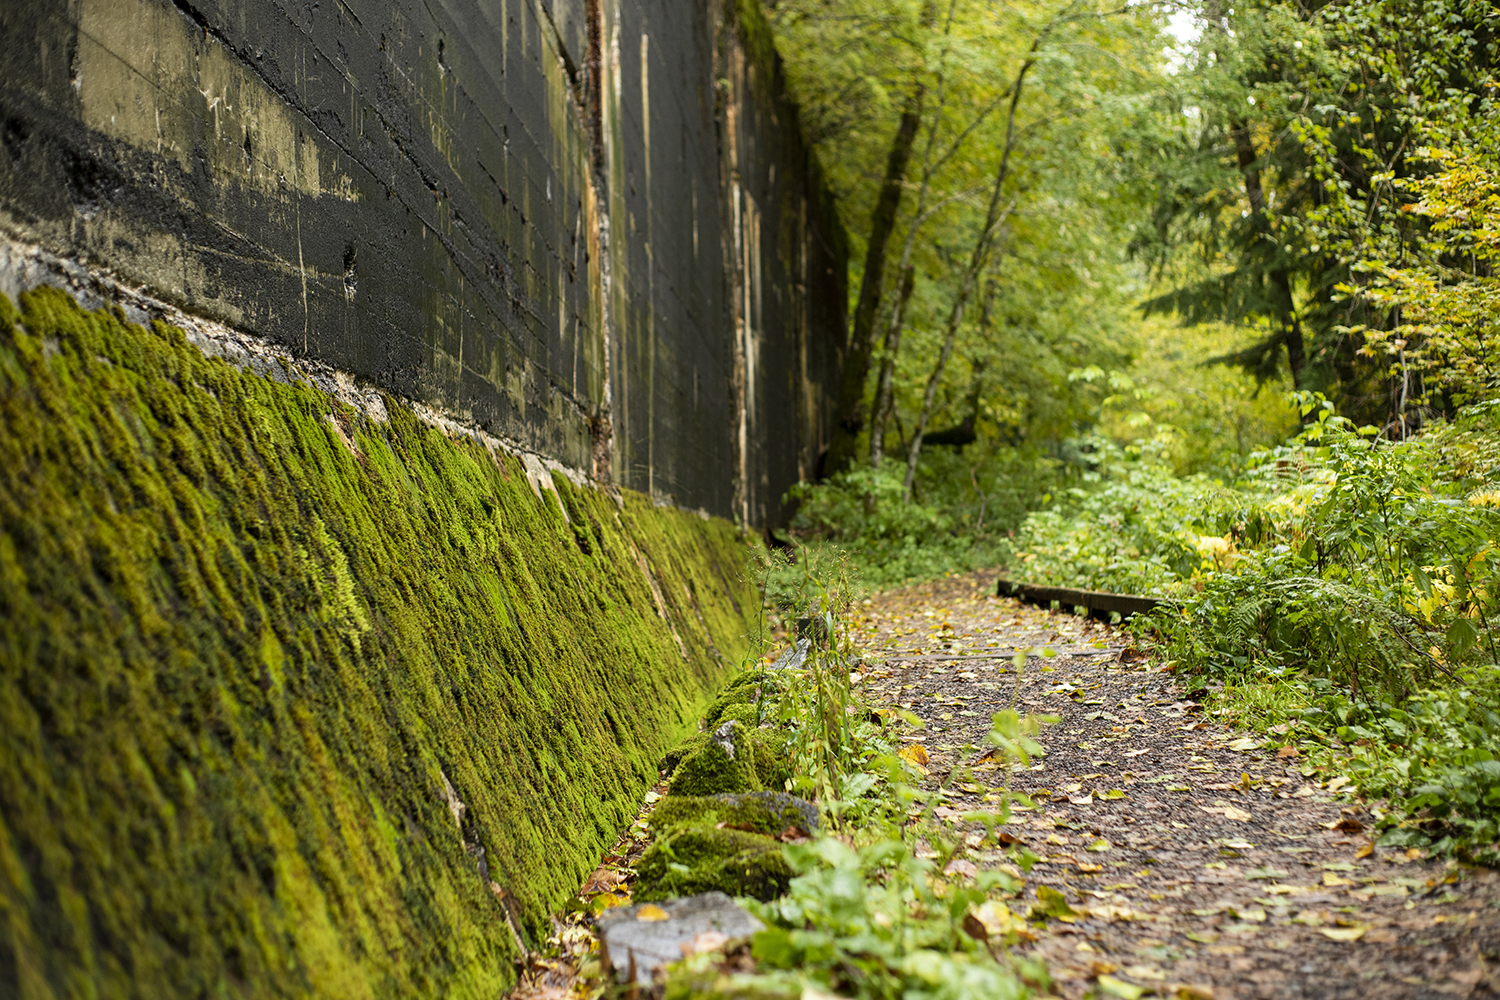 Paths are wide enough for social-distancing and for families and pets looking for a beautiful escape from the city. Early in the hike, a small wooden foot bridge leads visitors beside one of the first cement snow sheds. (Image: Rachael Jones / Seattle Refined)